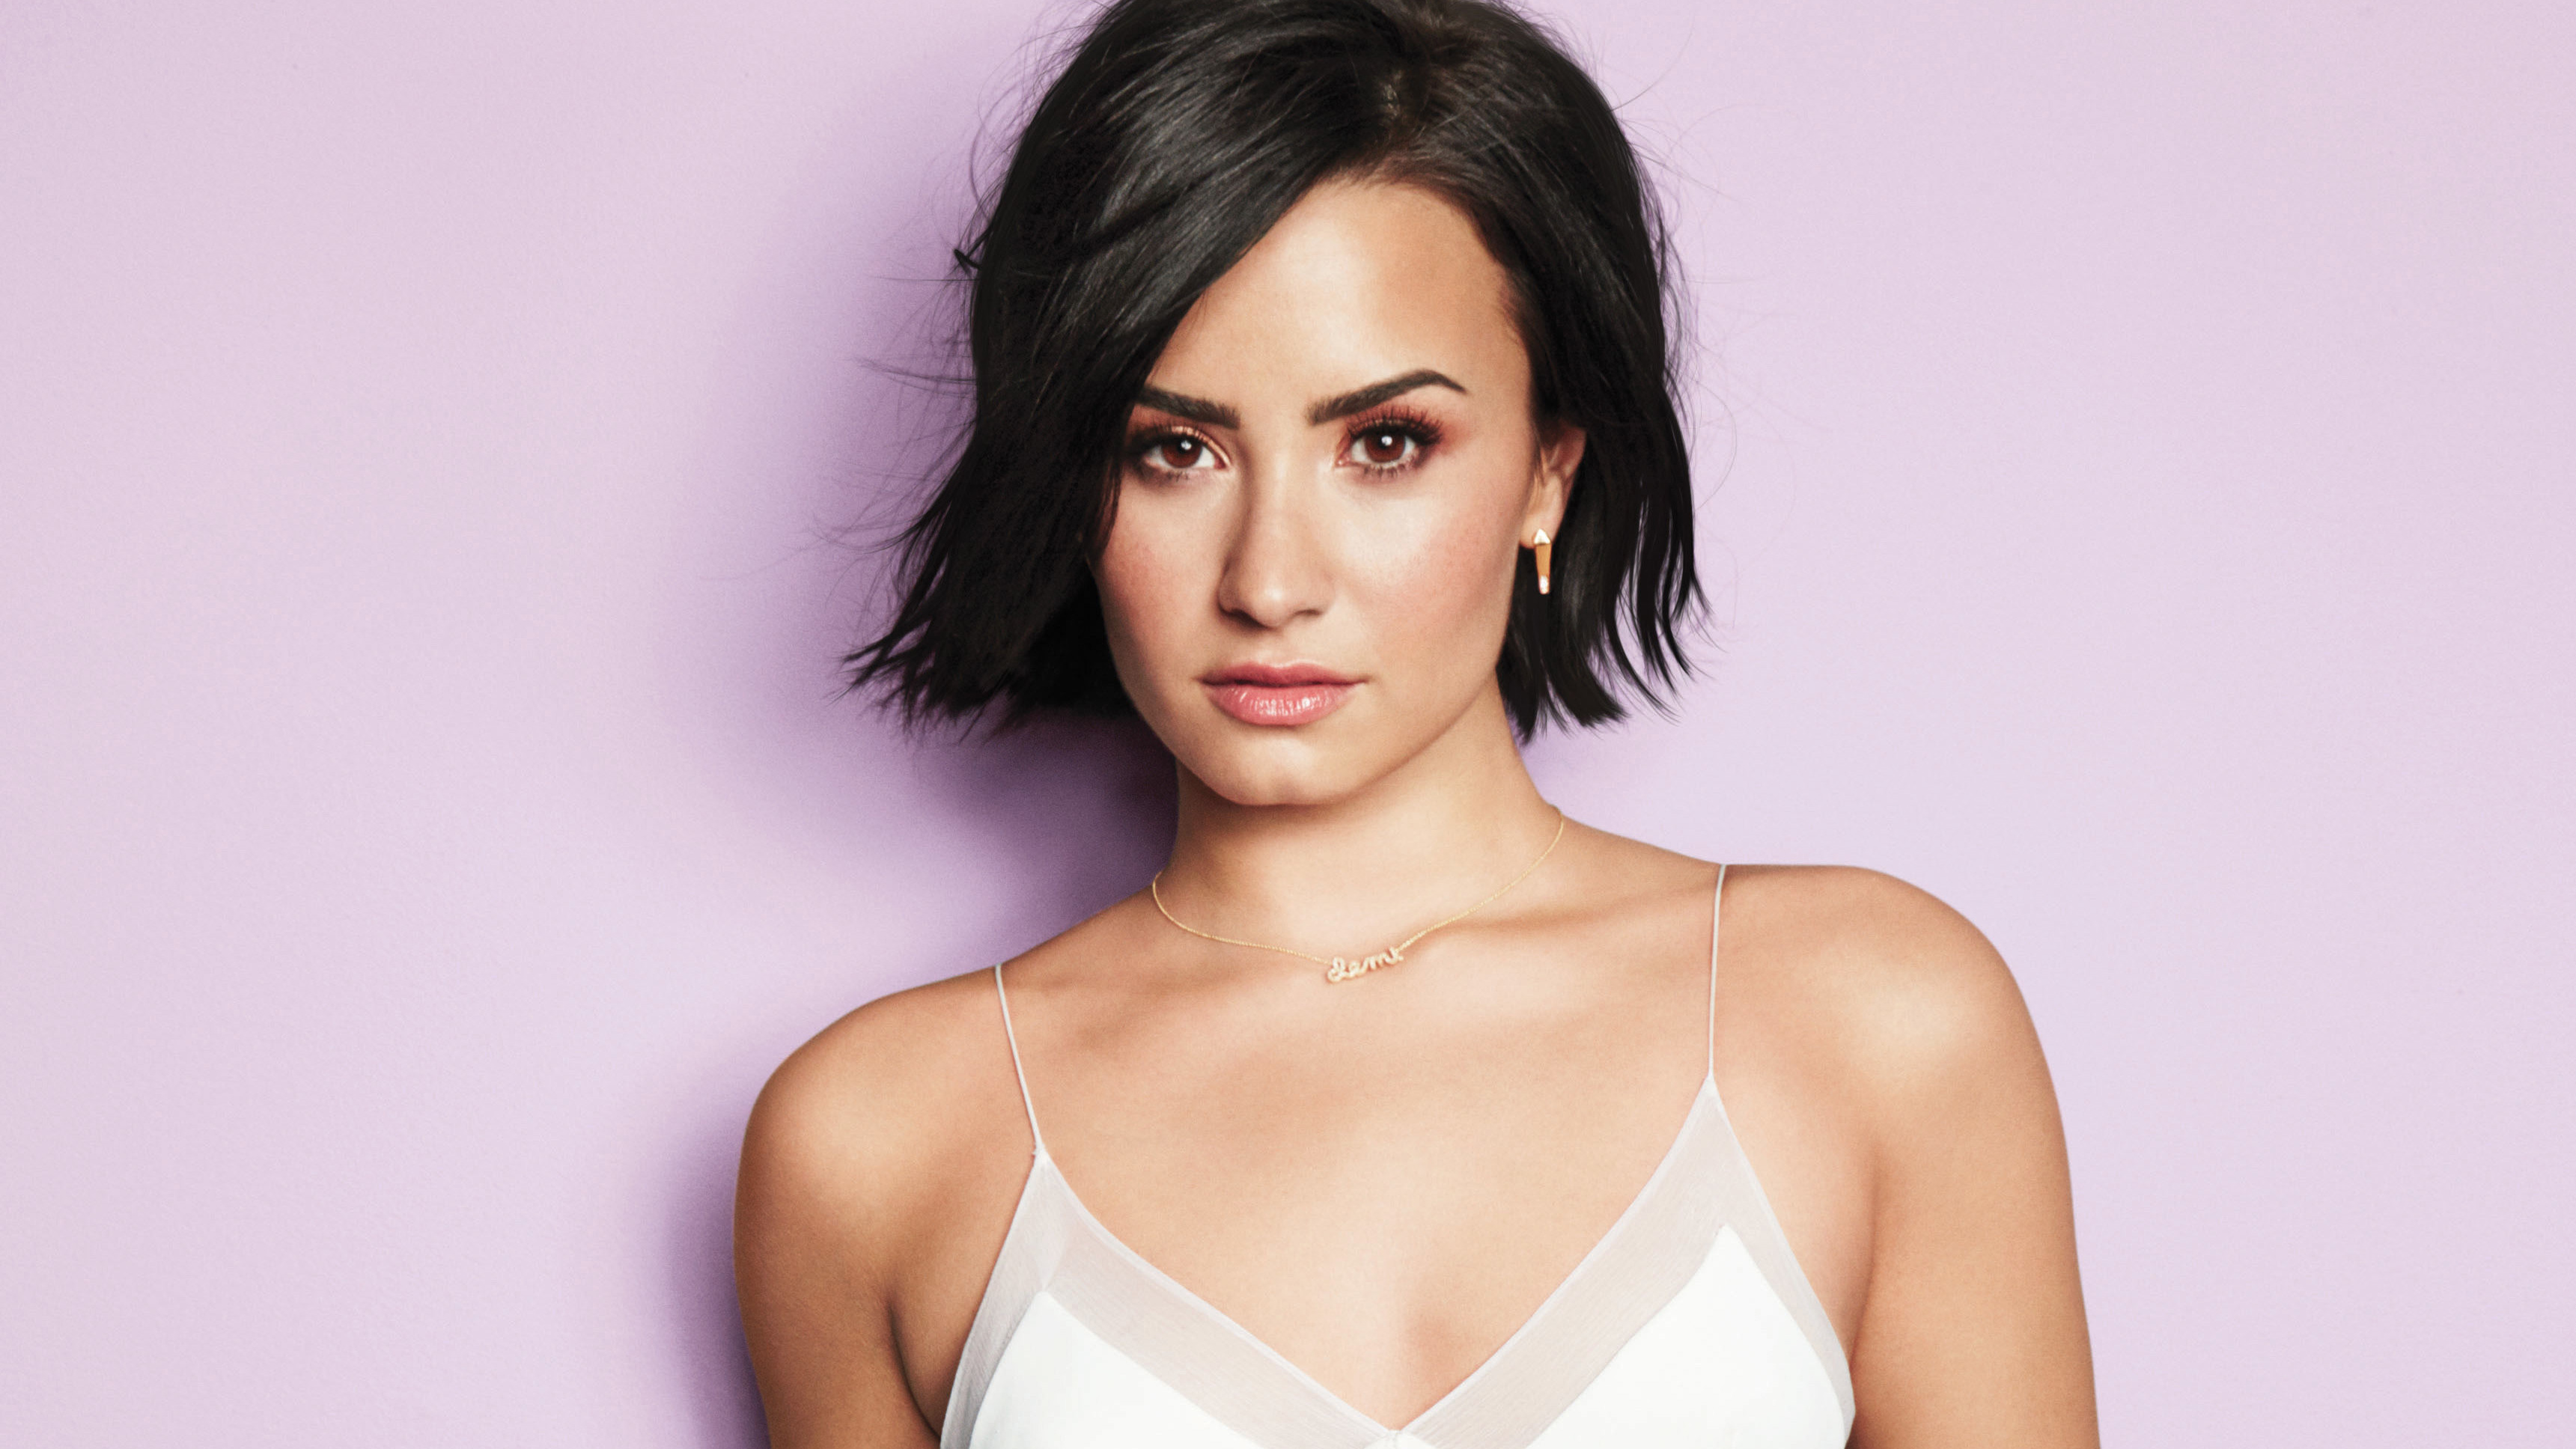 demi lovato wallpapers, images, backgrounds, photos and pictures